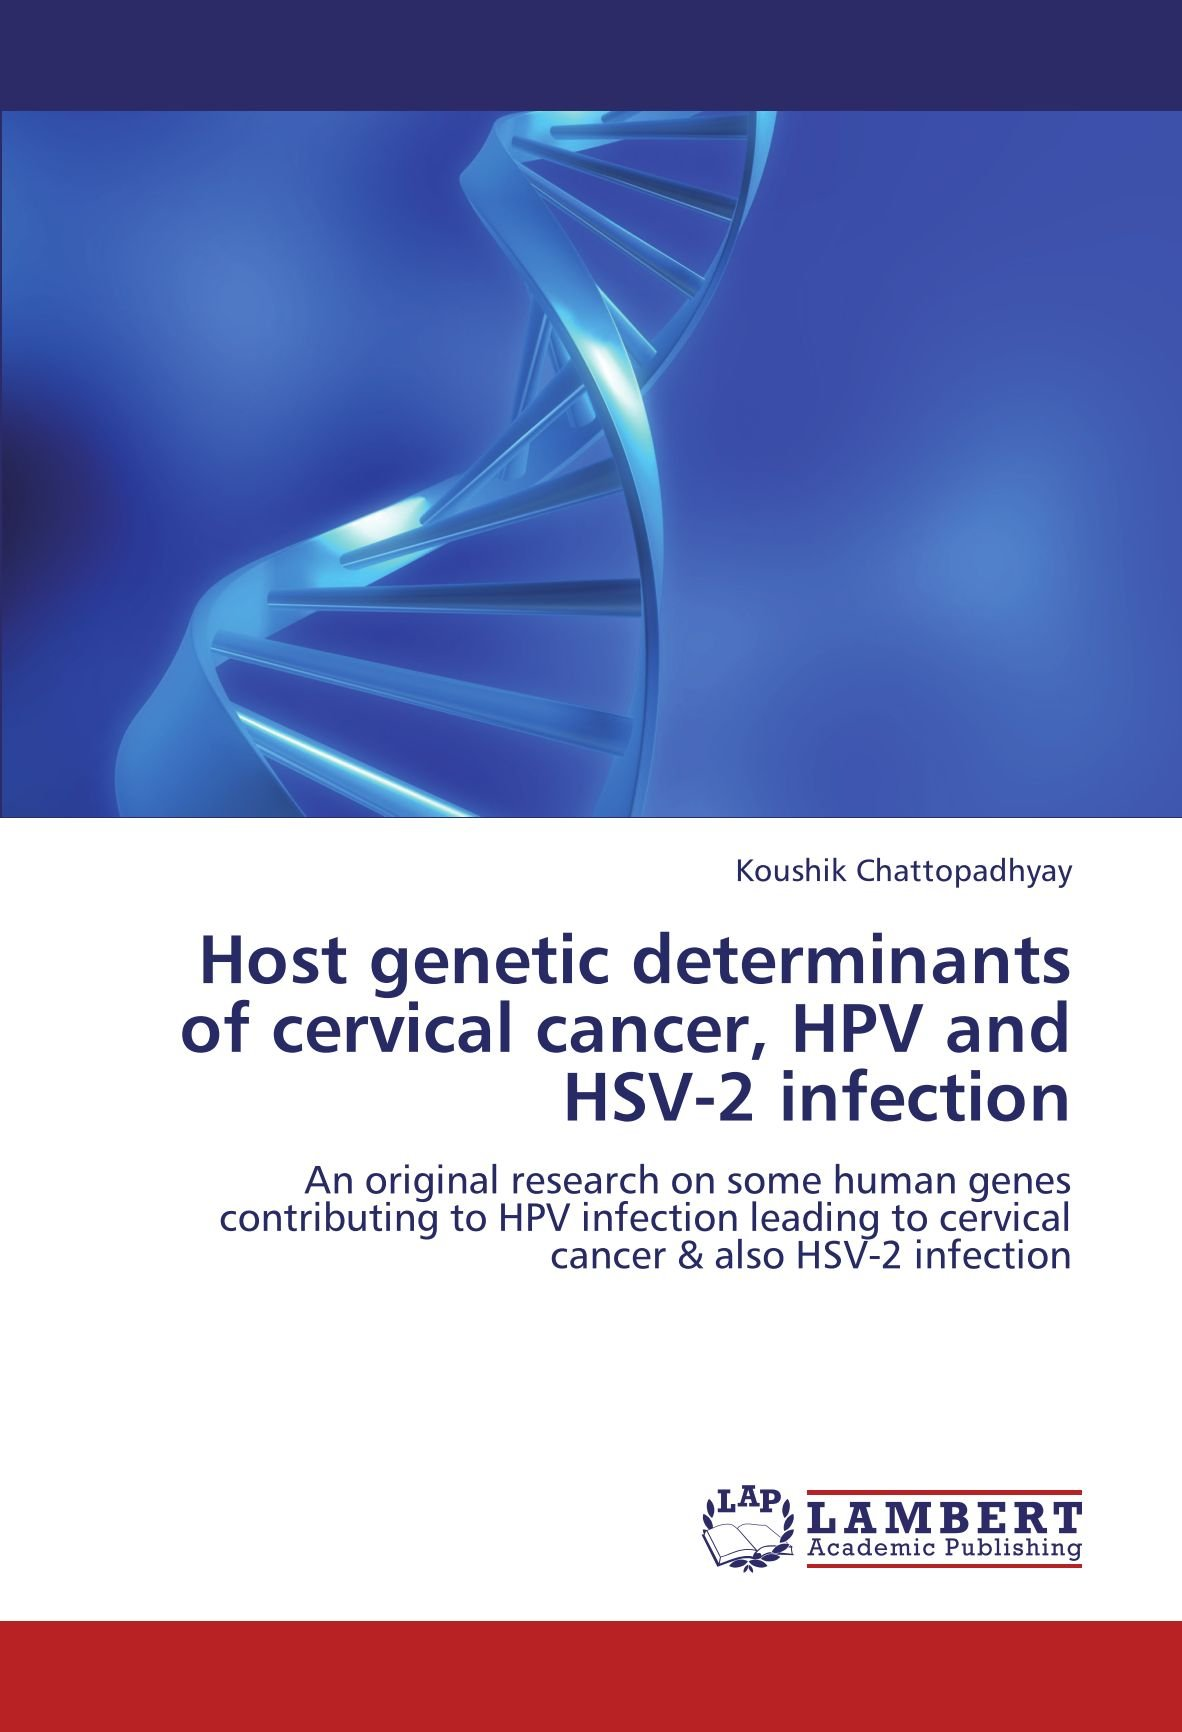 hpv herpes cervical cancer human papillomavirus vaccination content